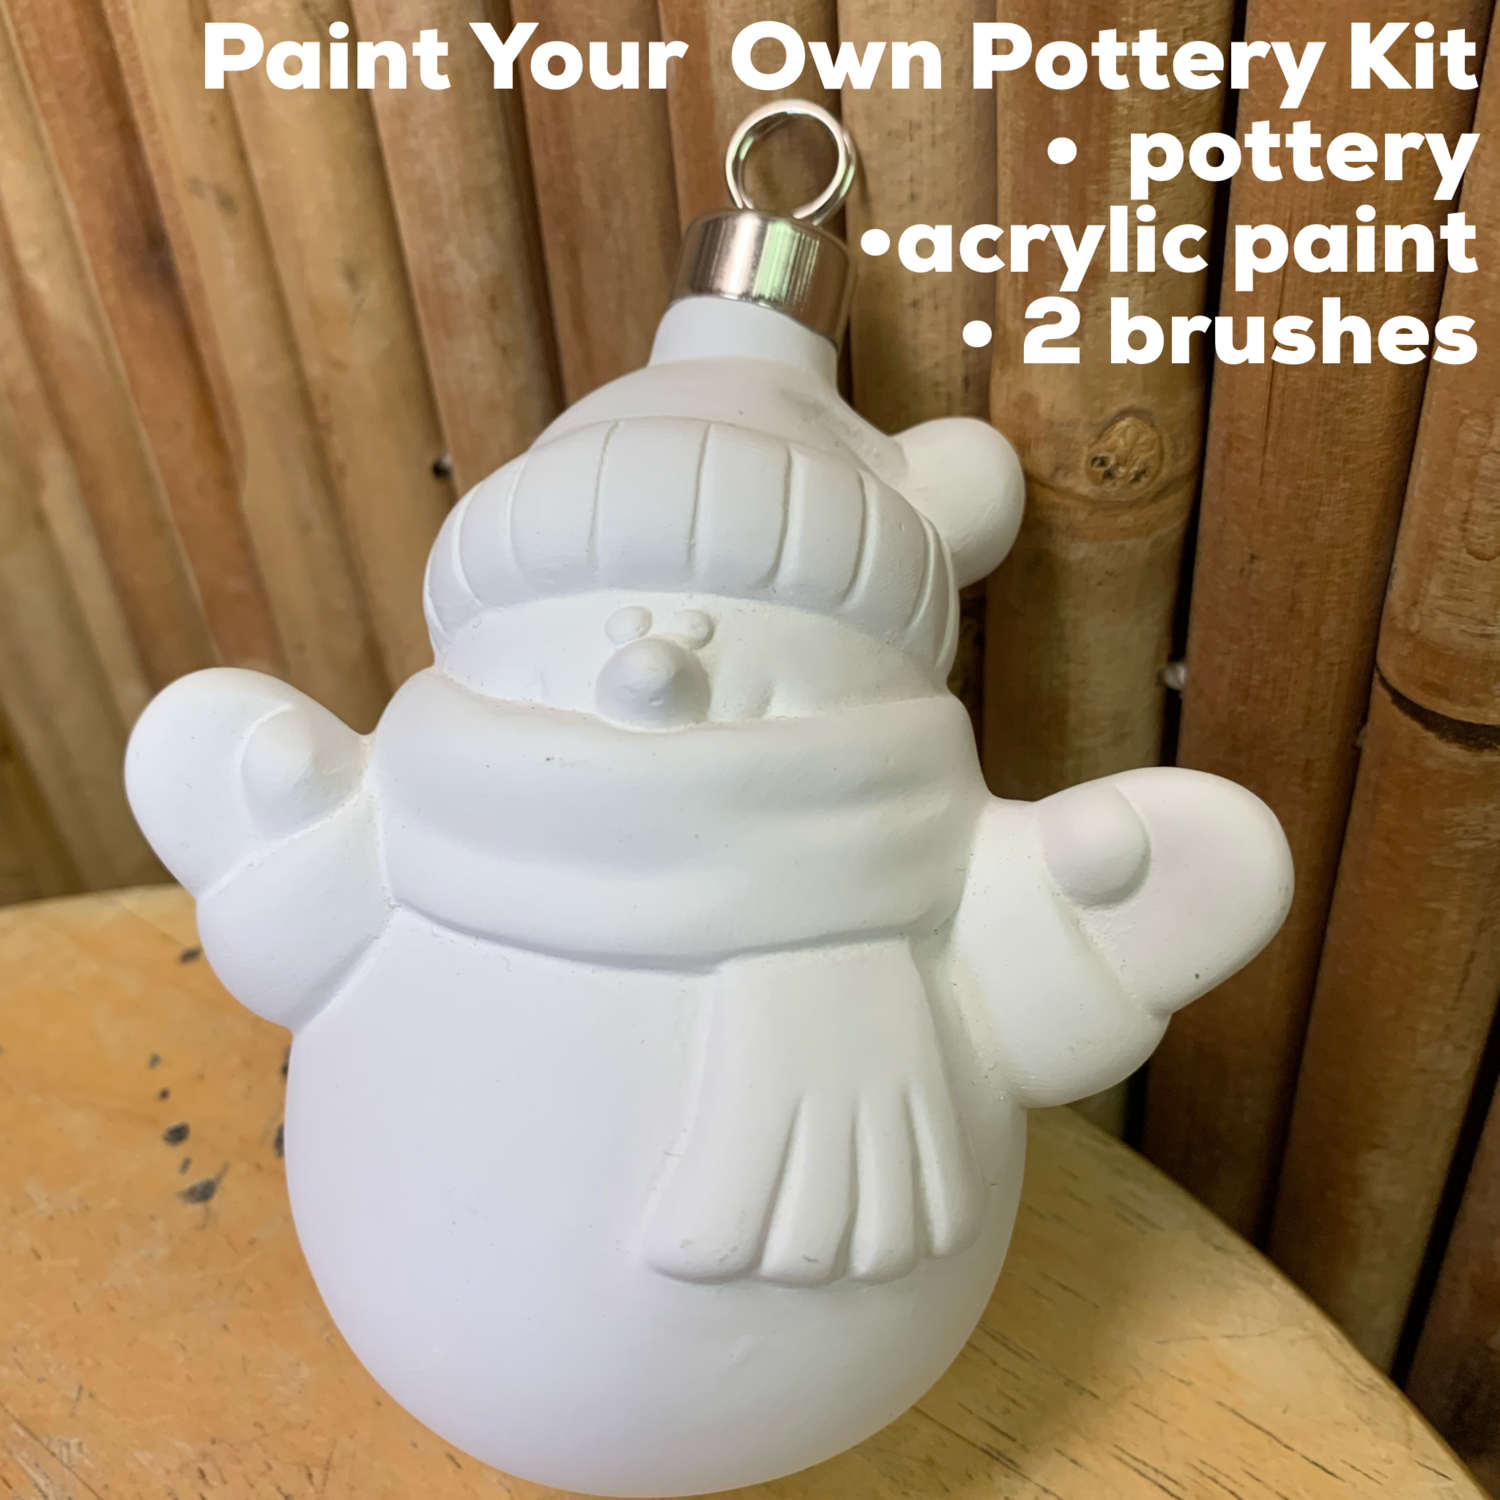 NO FIRE Paint Your Own Pottery Kit -  Ceramic Snowman Christmas Ornament Acrylic Painting Kit